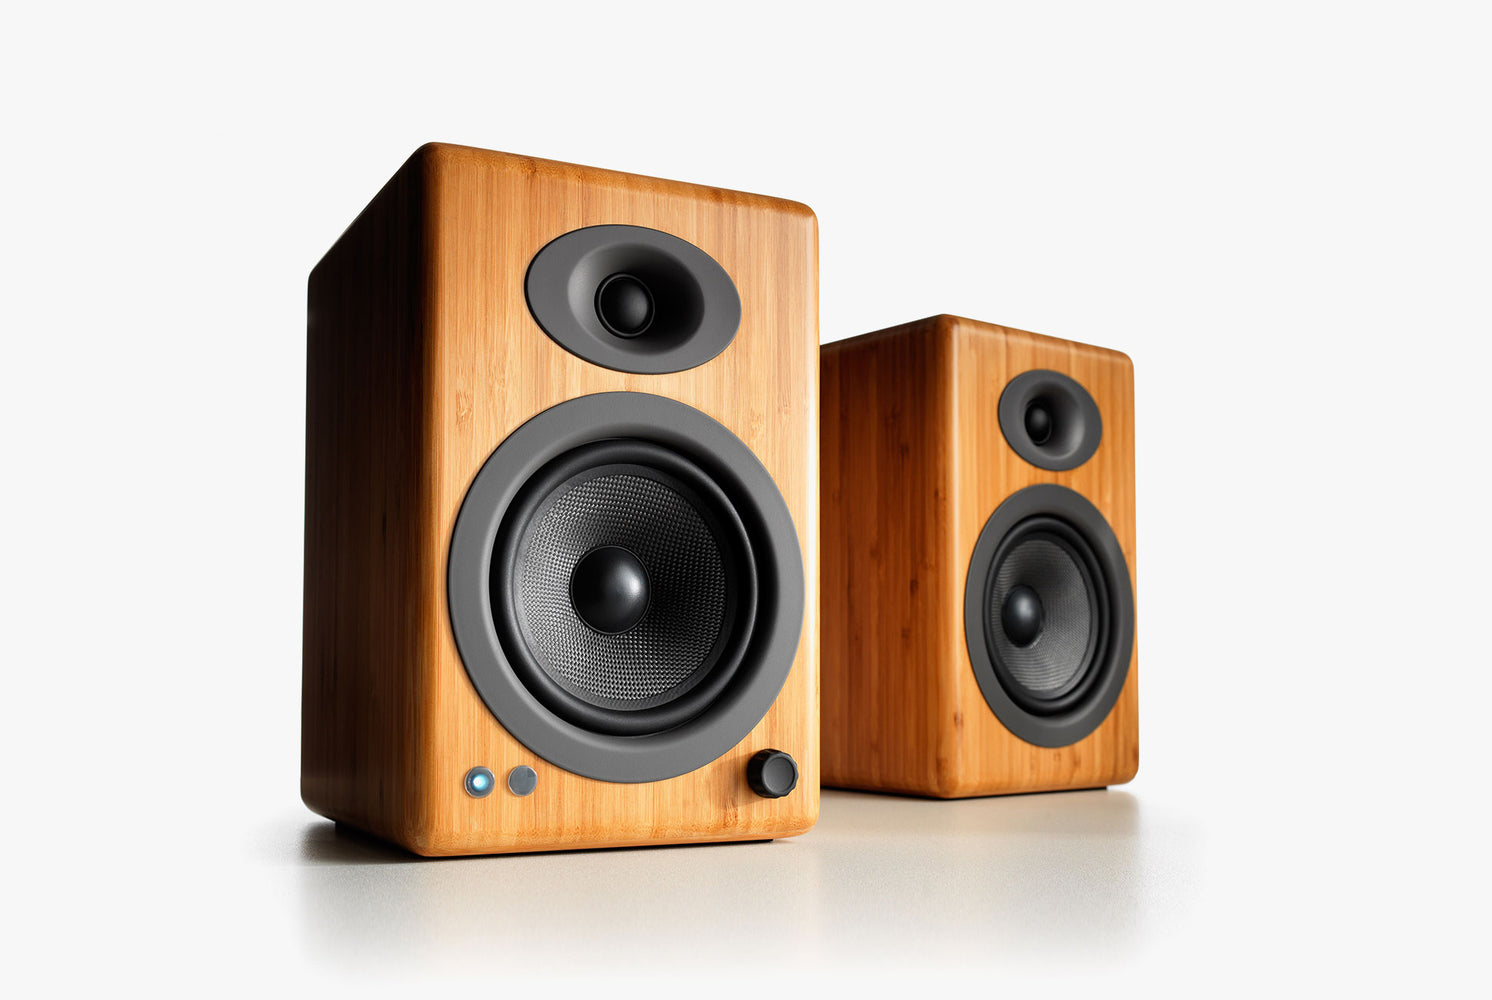 Wood Speakers Standing Up - Front View